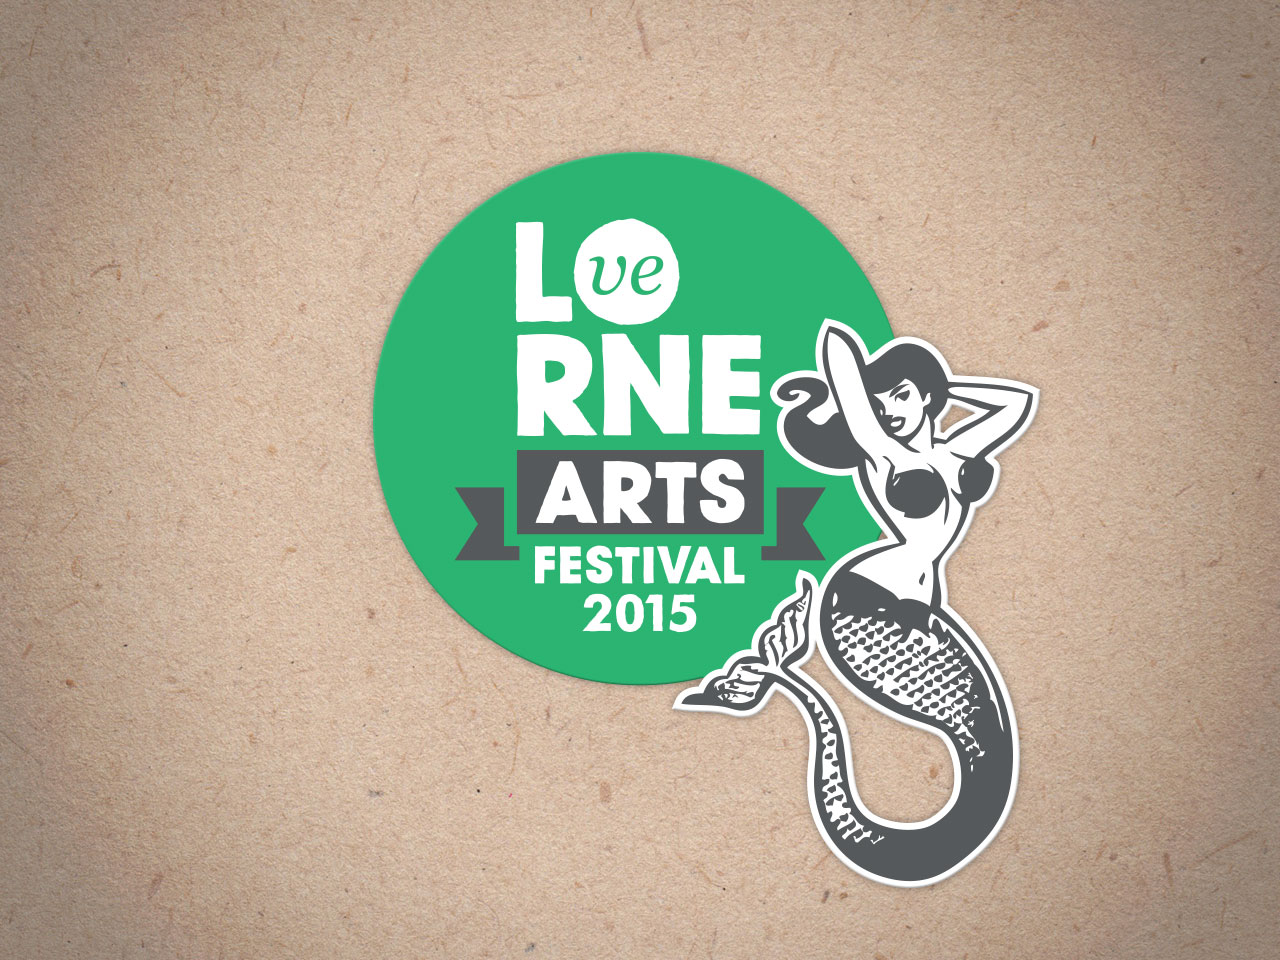 LORNE ARTS FESTIVAL: 2015 Logo Redesign and Creative